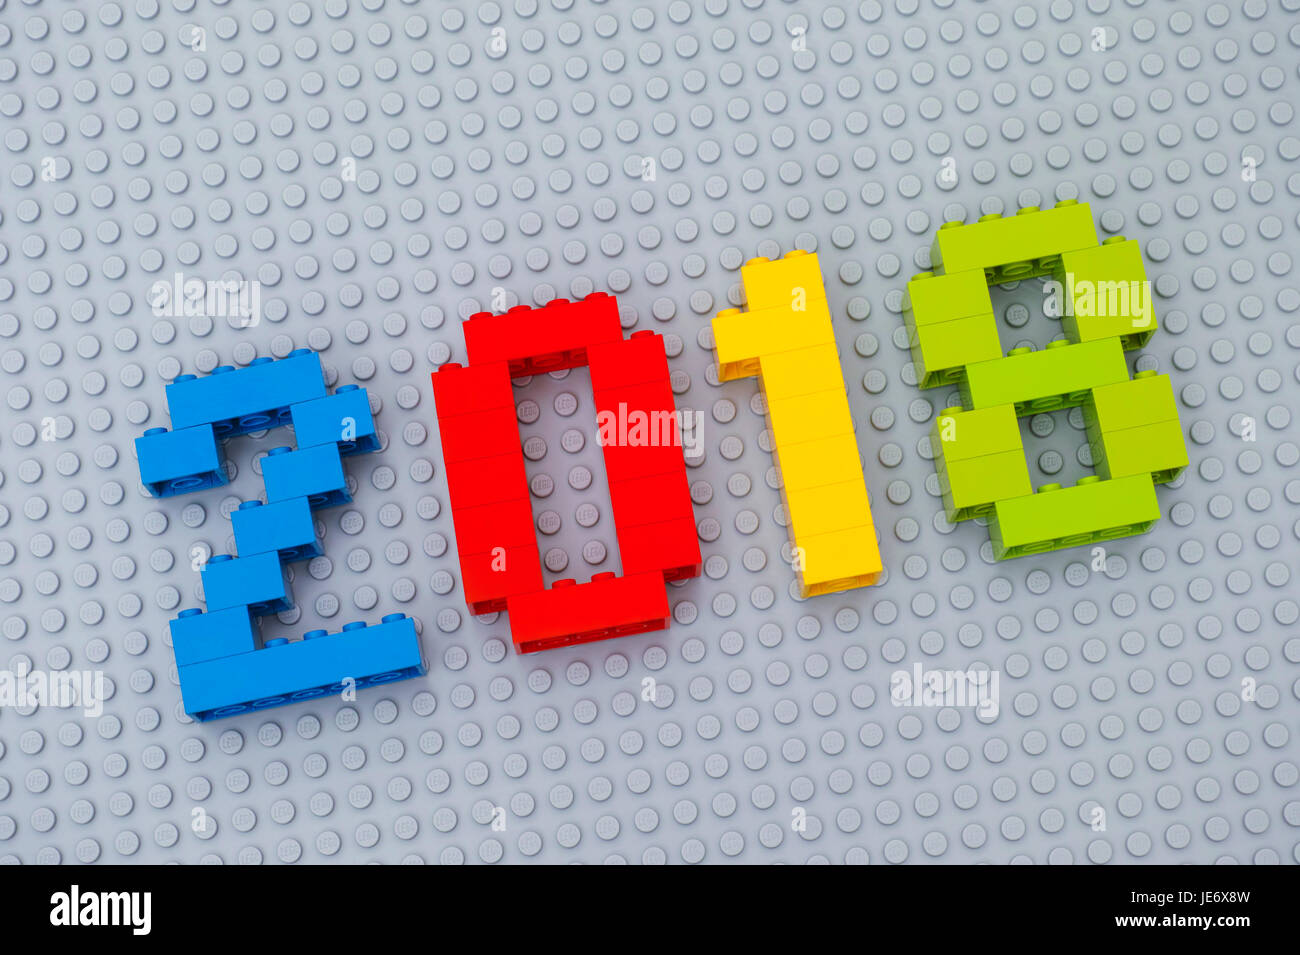 Tambov  Russian Federation   June 17  2017 Lego New year 2018 Stock     Tambov  Russian Federation   June 17  2017 Lego New year 2018 concept   Numbers on gray baseplate  Studio shot